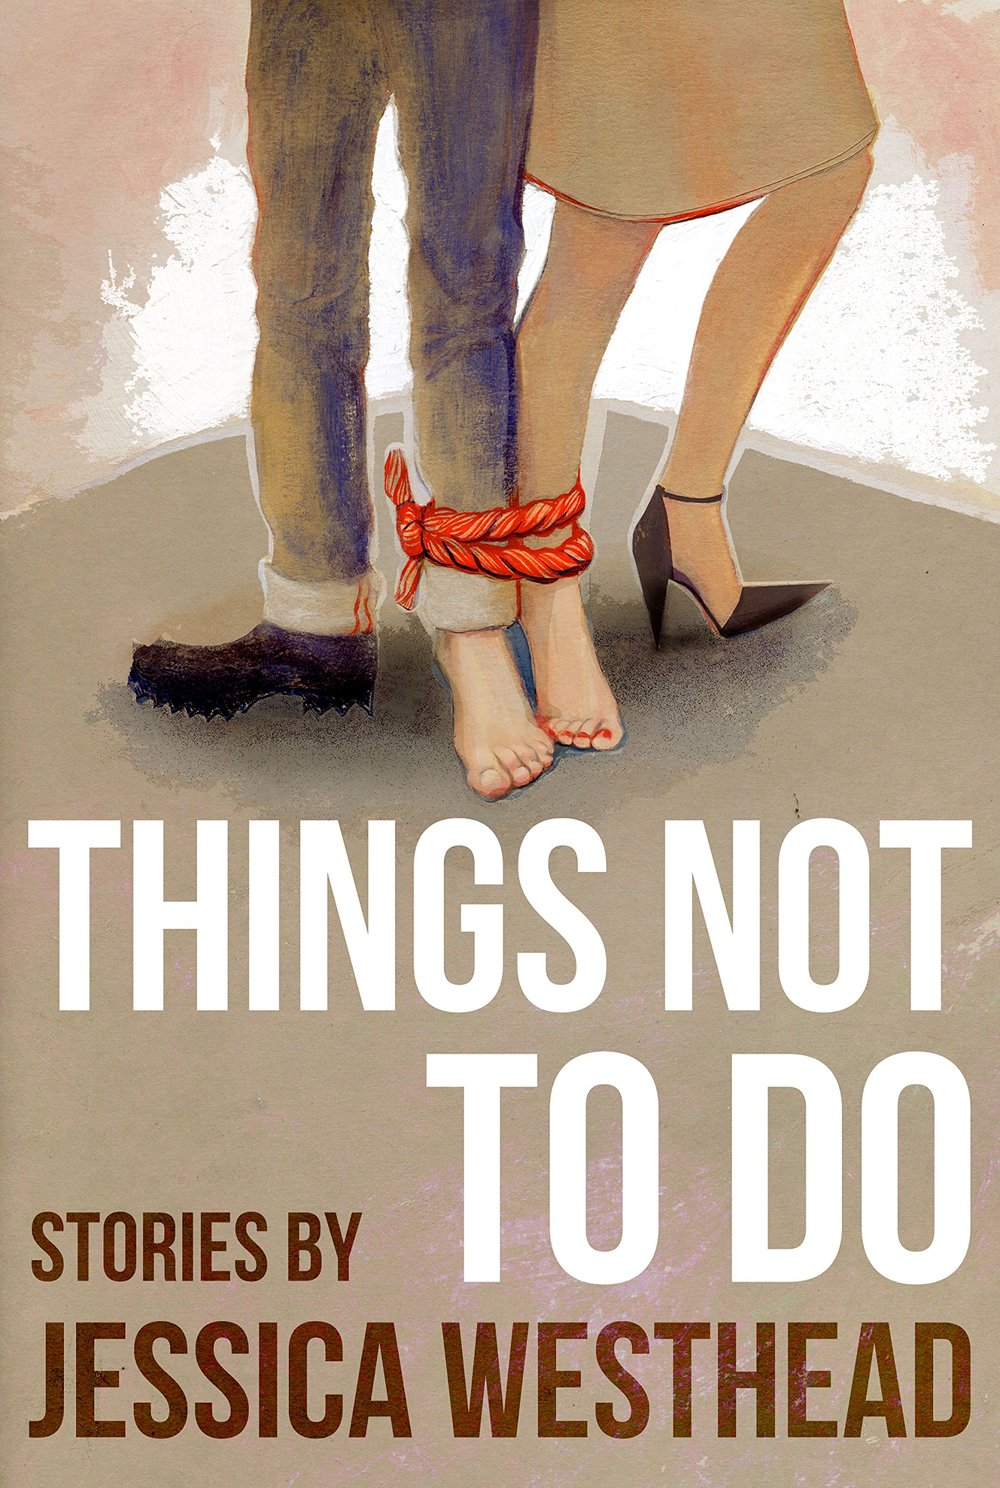 Jessica Westhead.  Things Not To Do . Cormorant Books. $22.95, ISBN: 978-1770865068